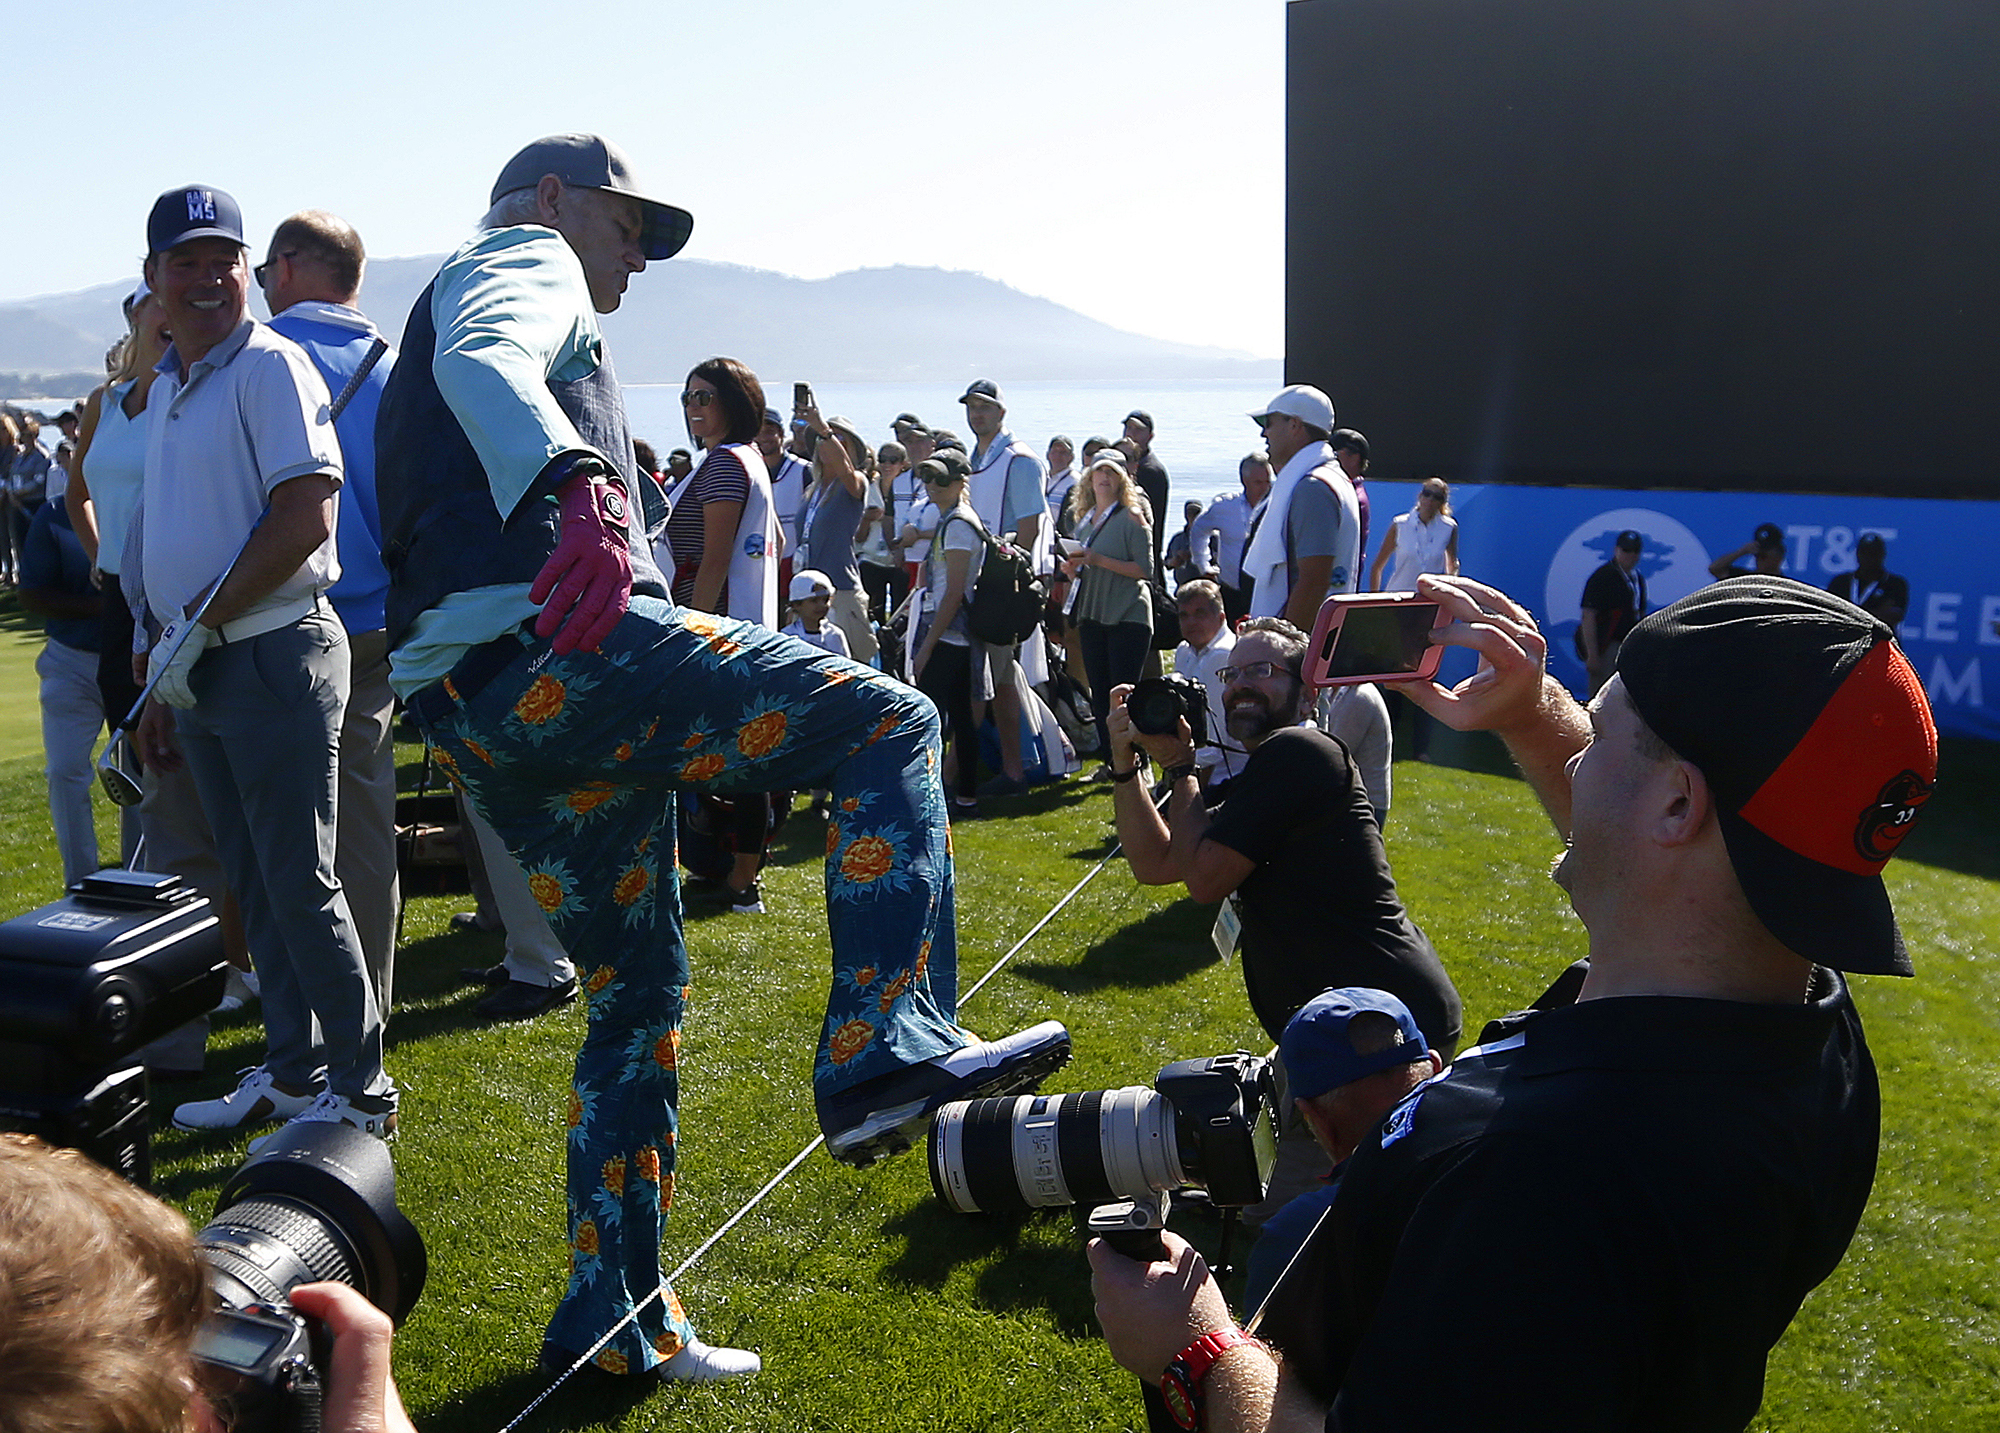 Rory McIlroy posts five-putt double-bogey at AT&T Pebble Beach Pro